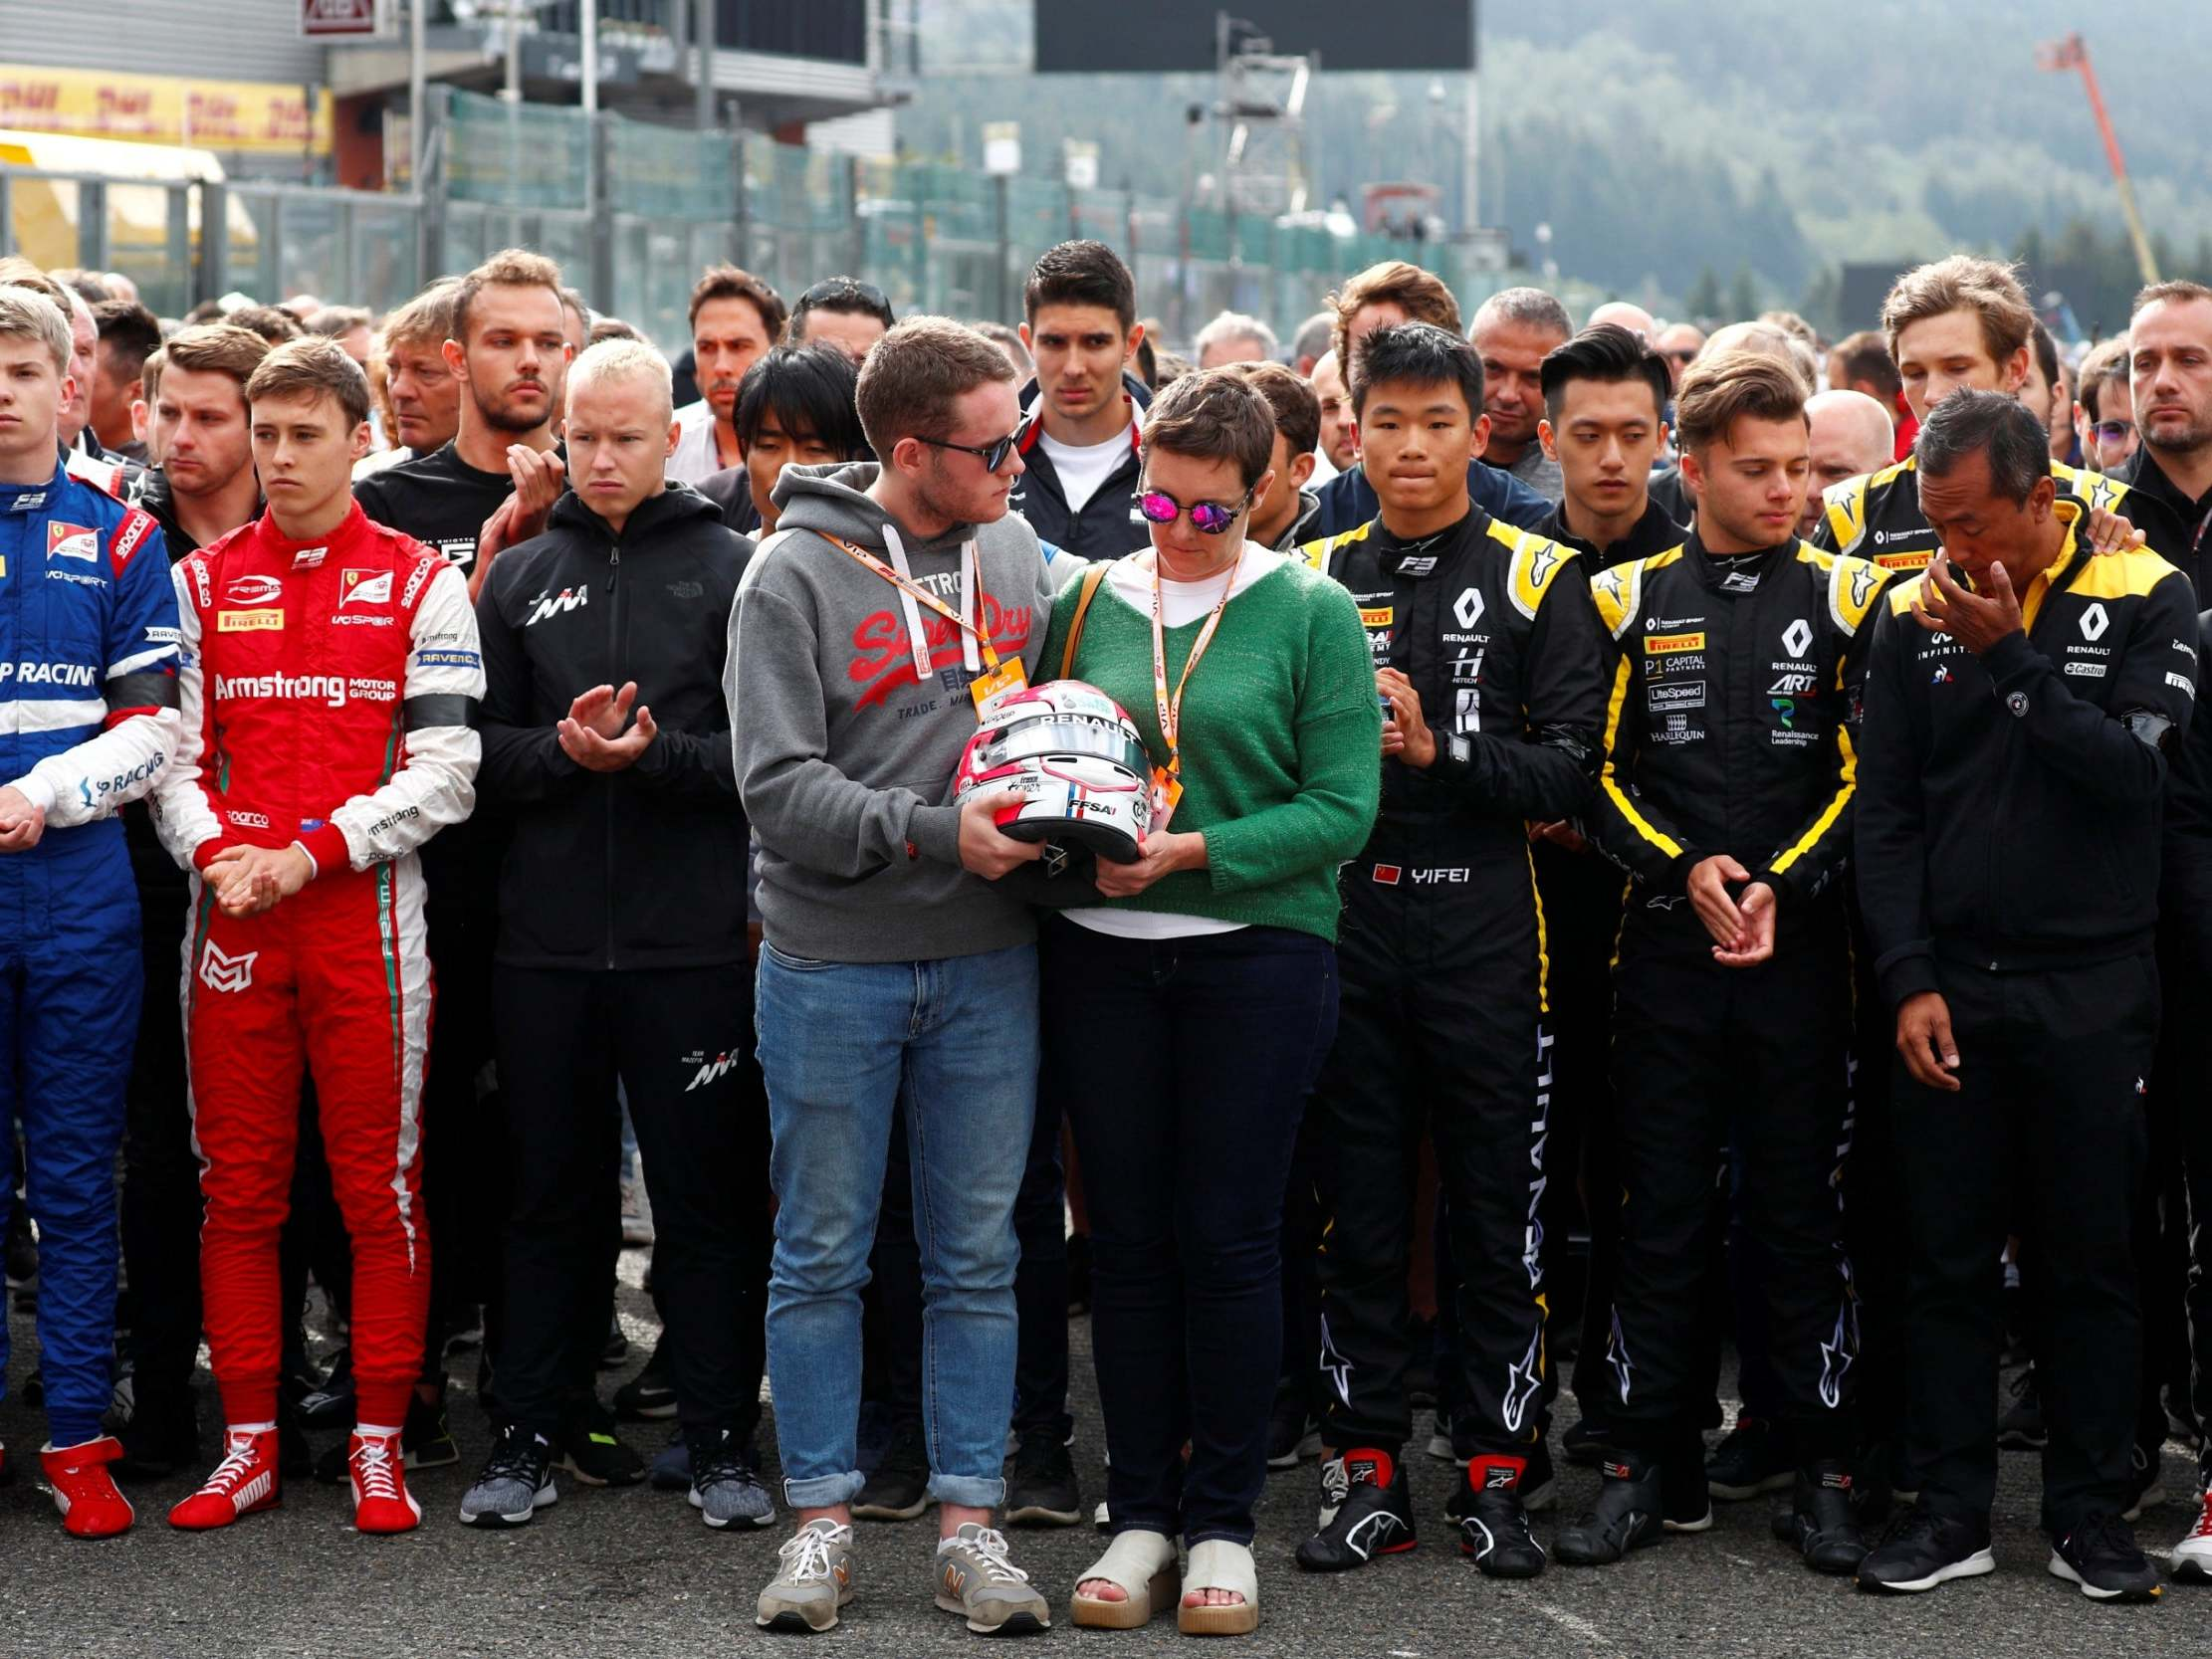 Belgian Grand Prix LIVE: Start time, grid, latest news and updates as F1 mourns Anthoine Hubert after death